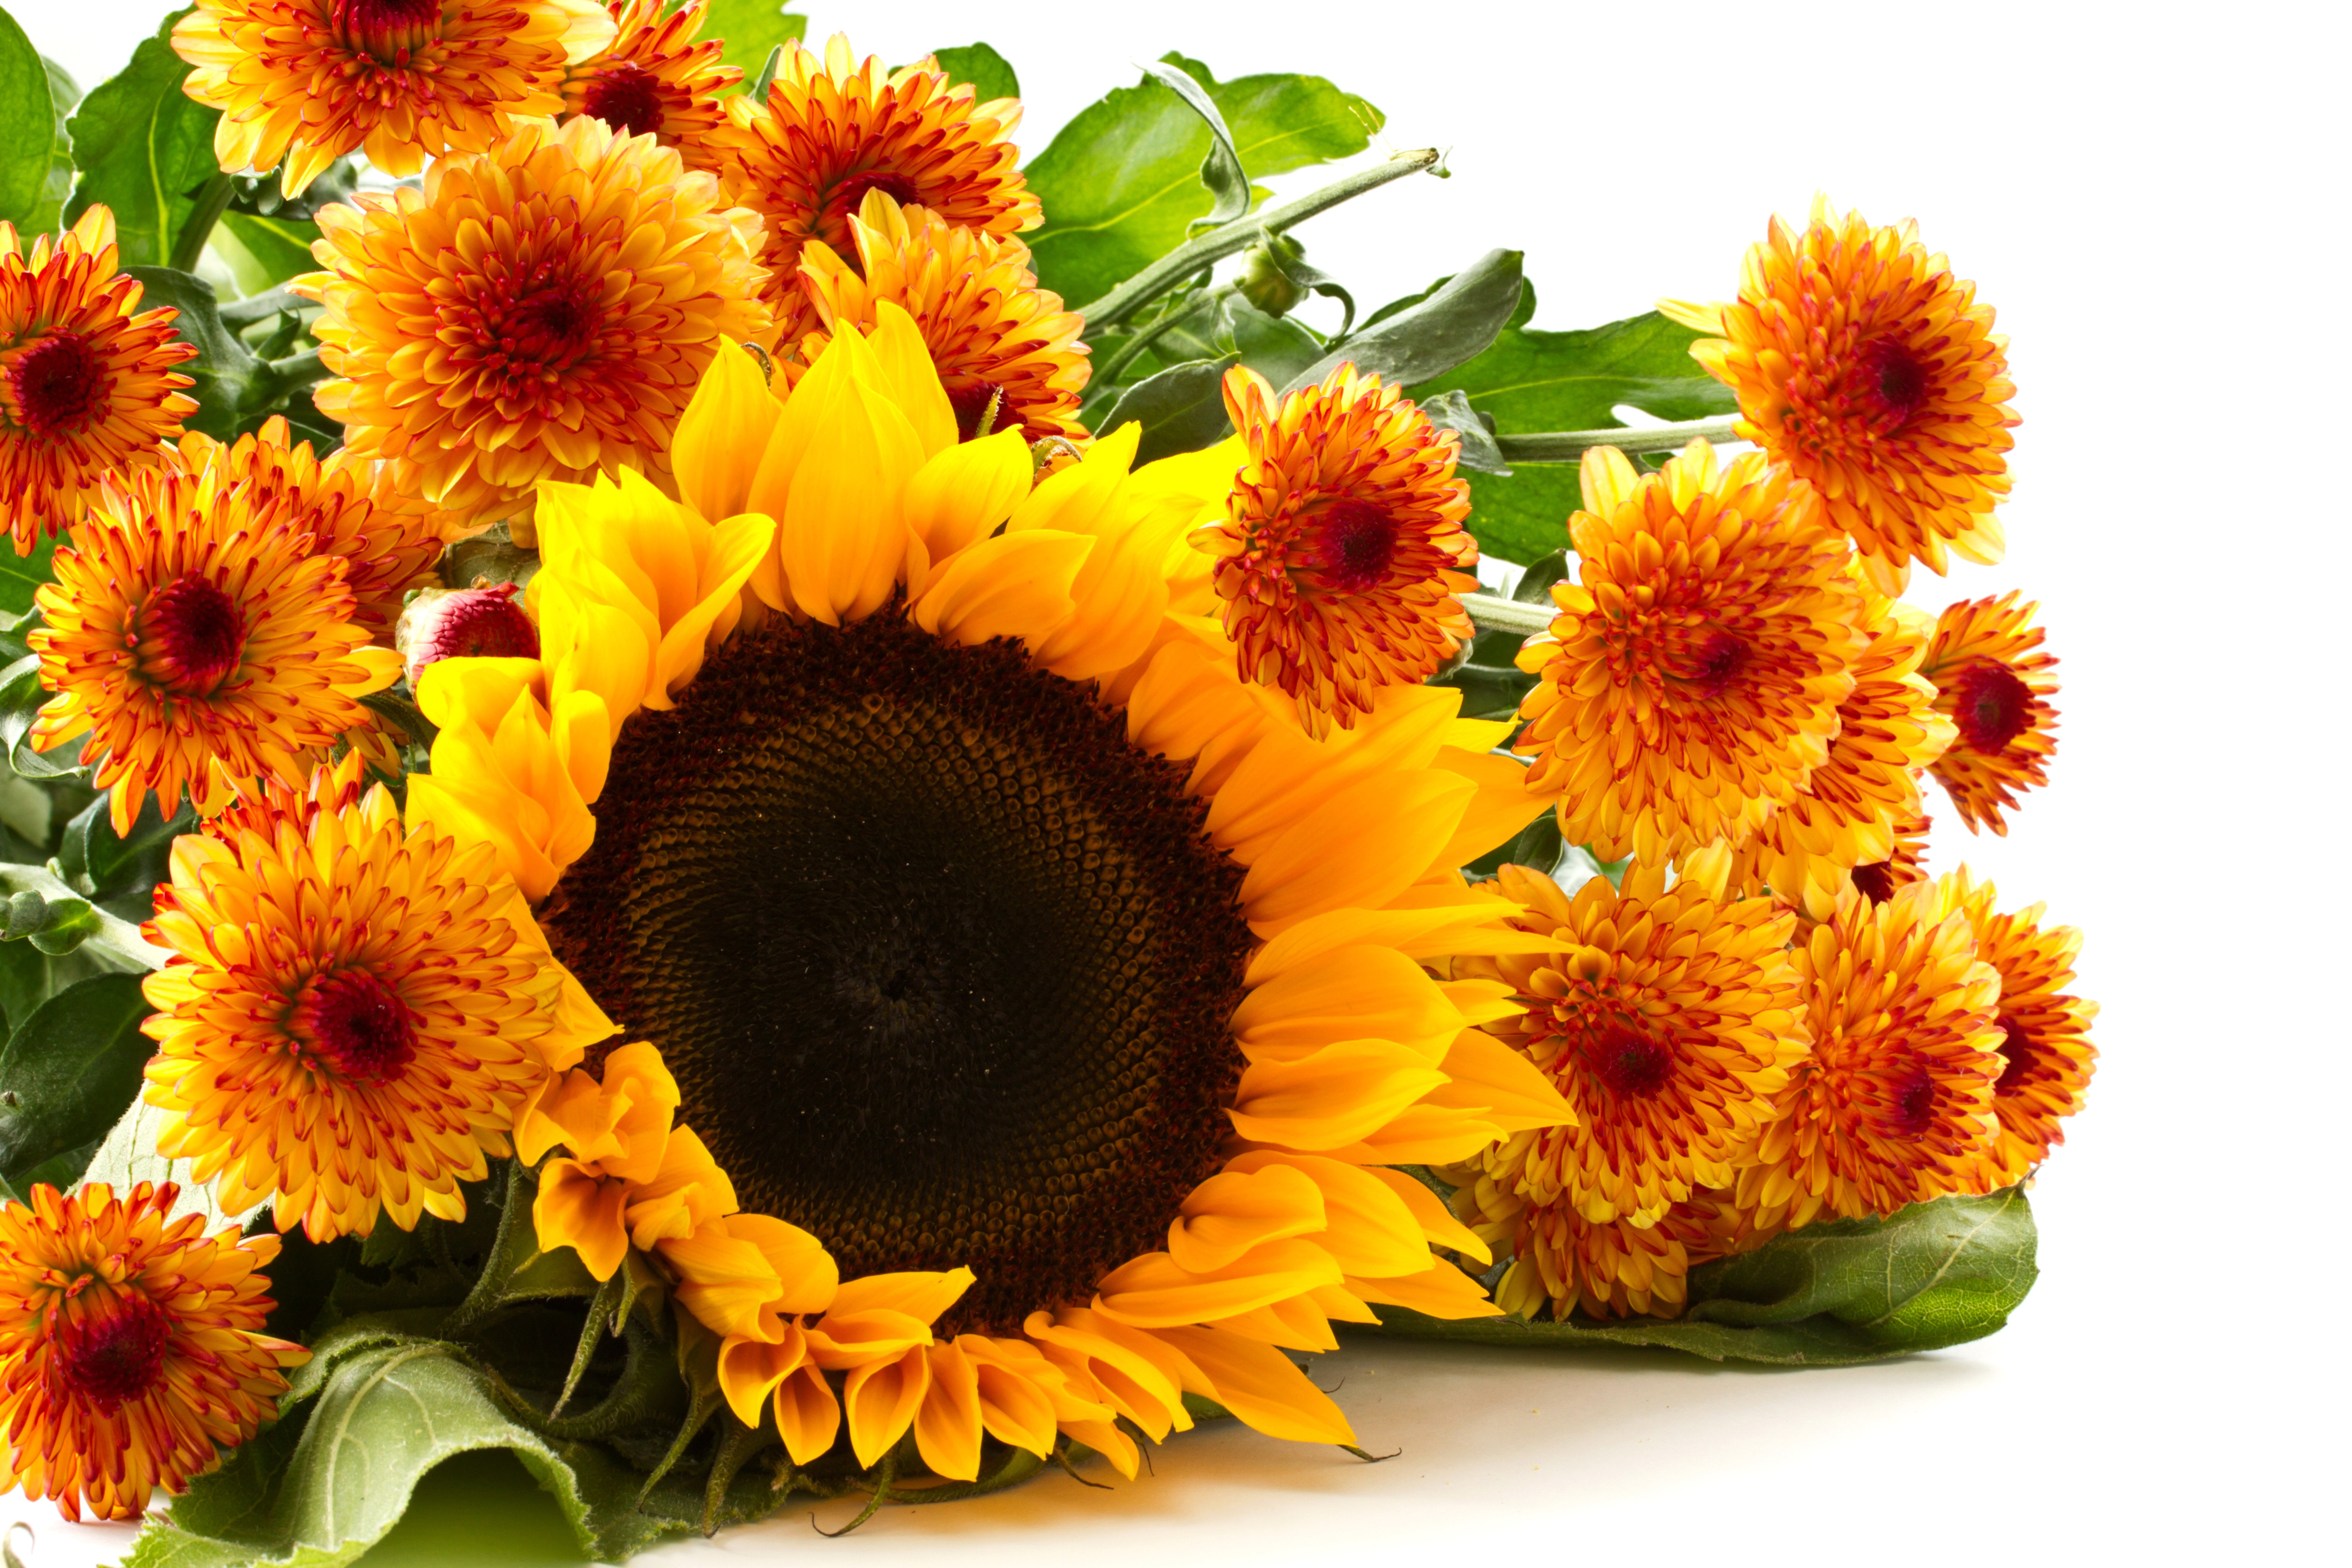 76 4k Ultra Hd Sunflower Wallpapers Background Images